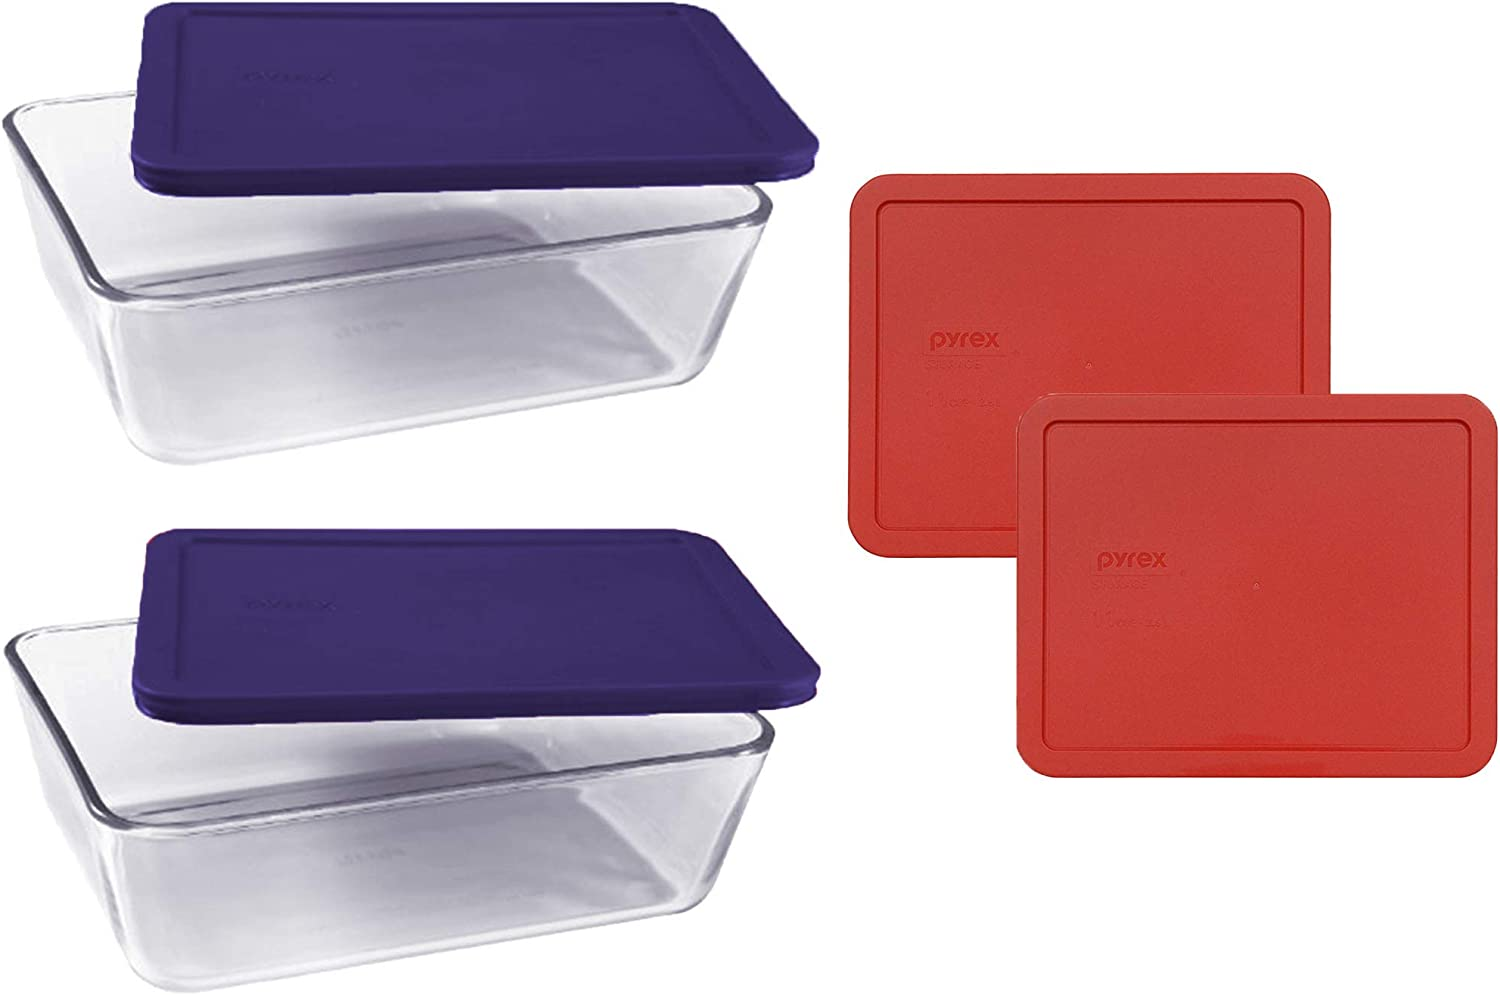 Pyrex Basics Clear Glass Food Storage Dishes, 2 (11-Cup) Oblong Dishes with Navy Blue and Red Plastic Lids